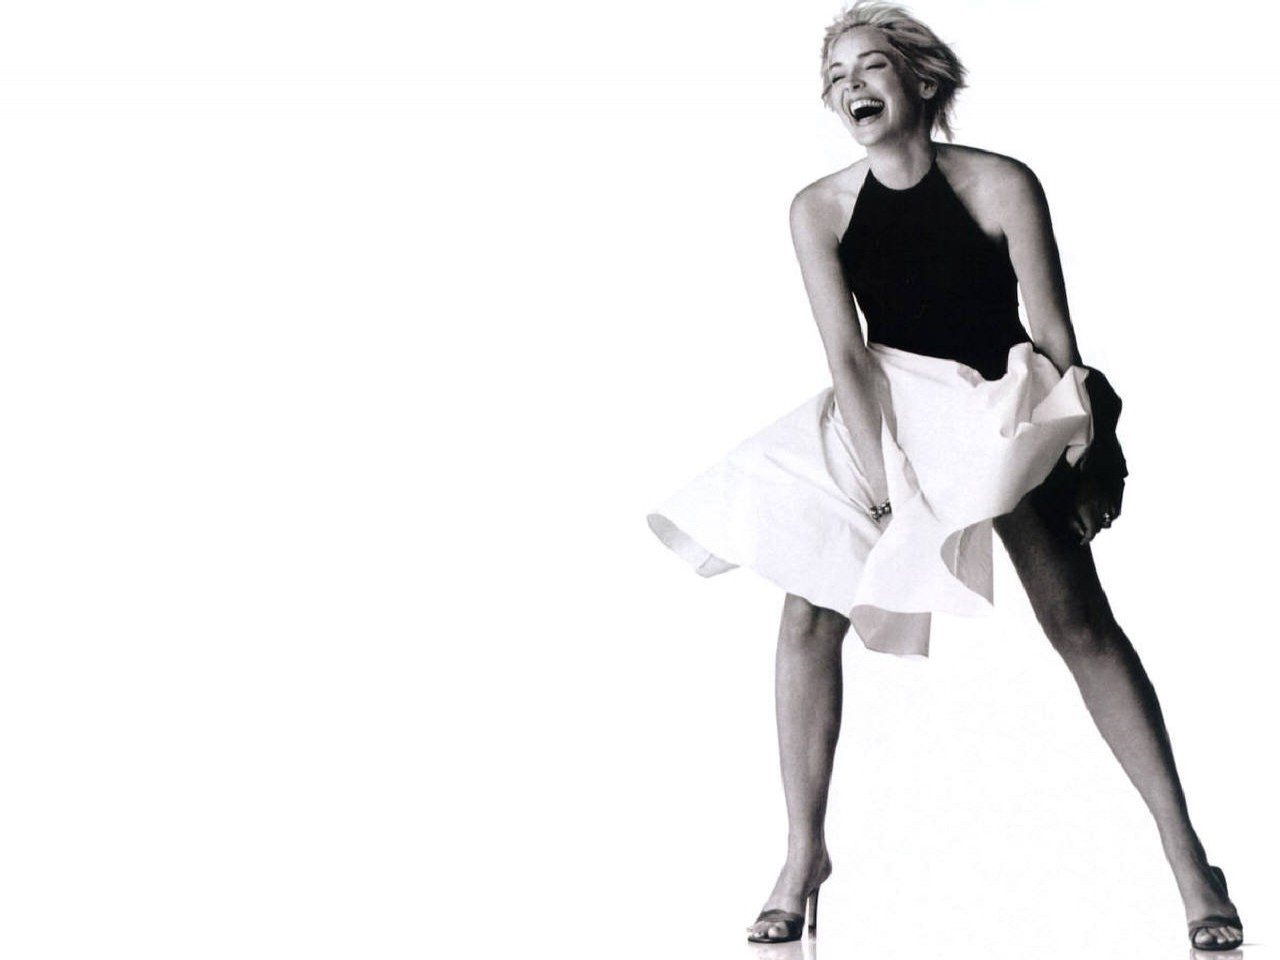 Wallpaper di Sharon Stone, nei panni di un'ironica Marilyn